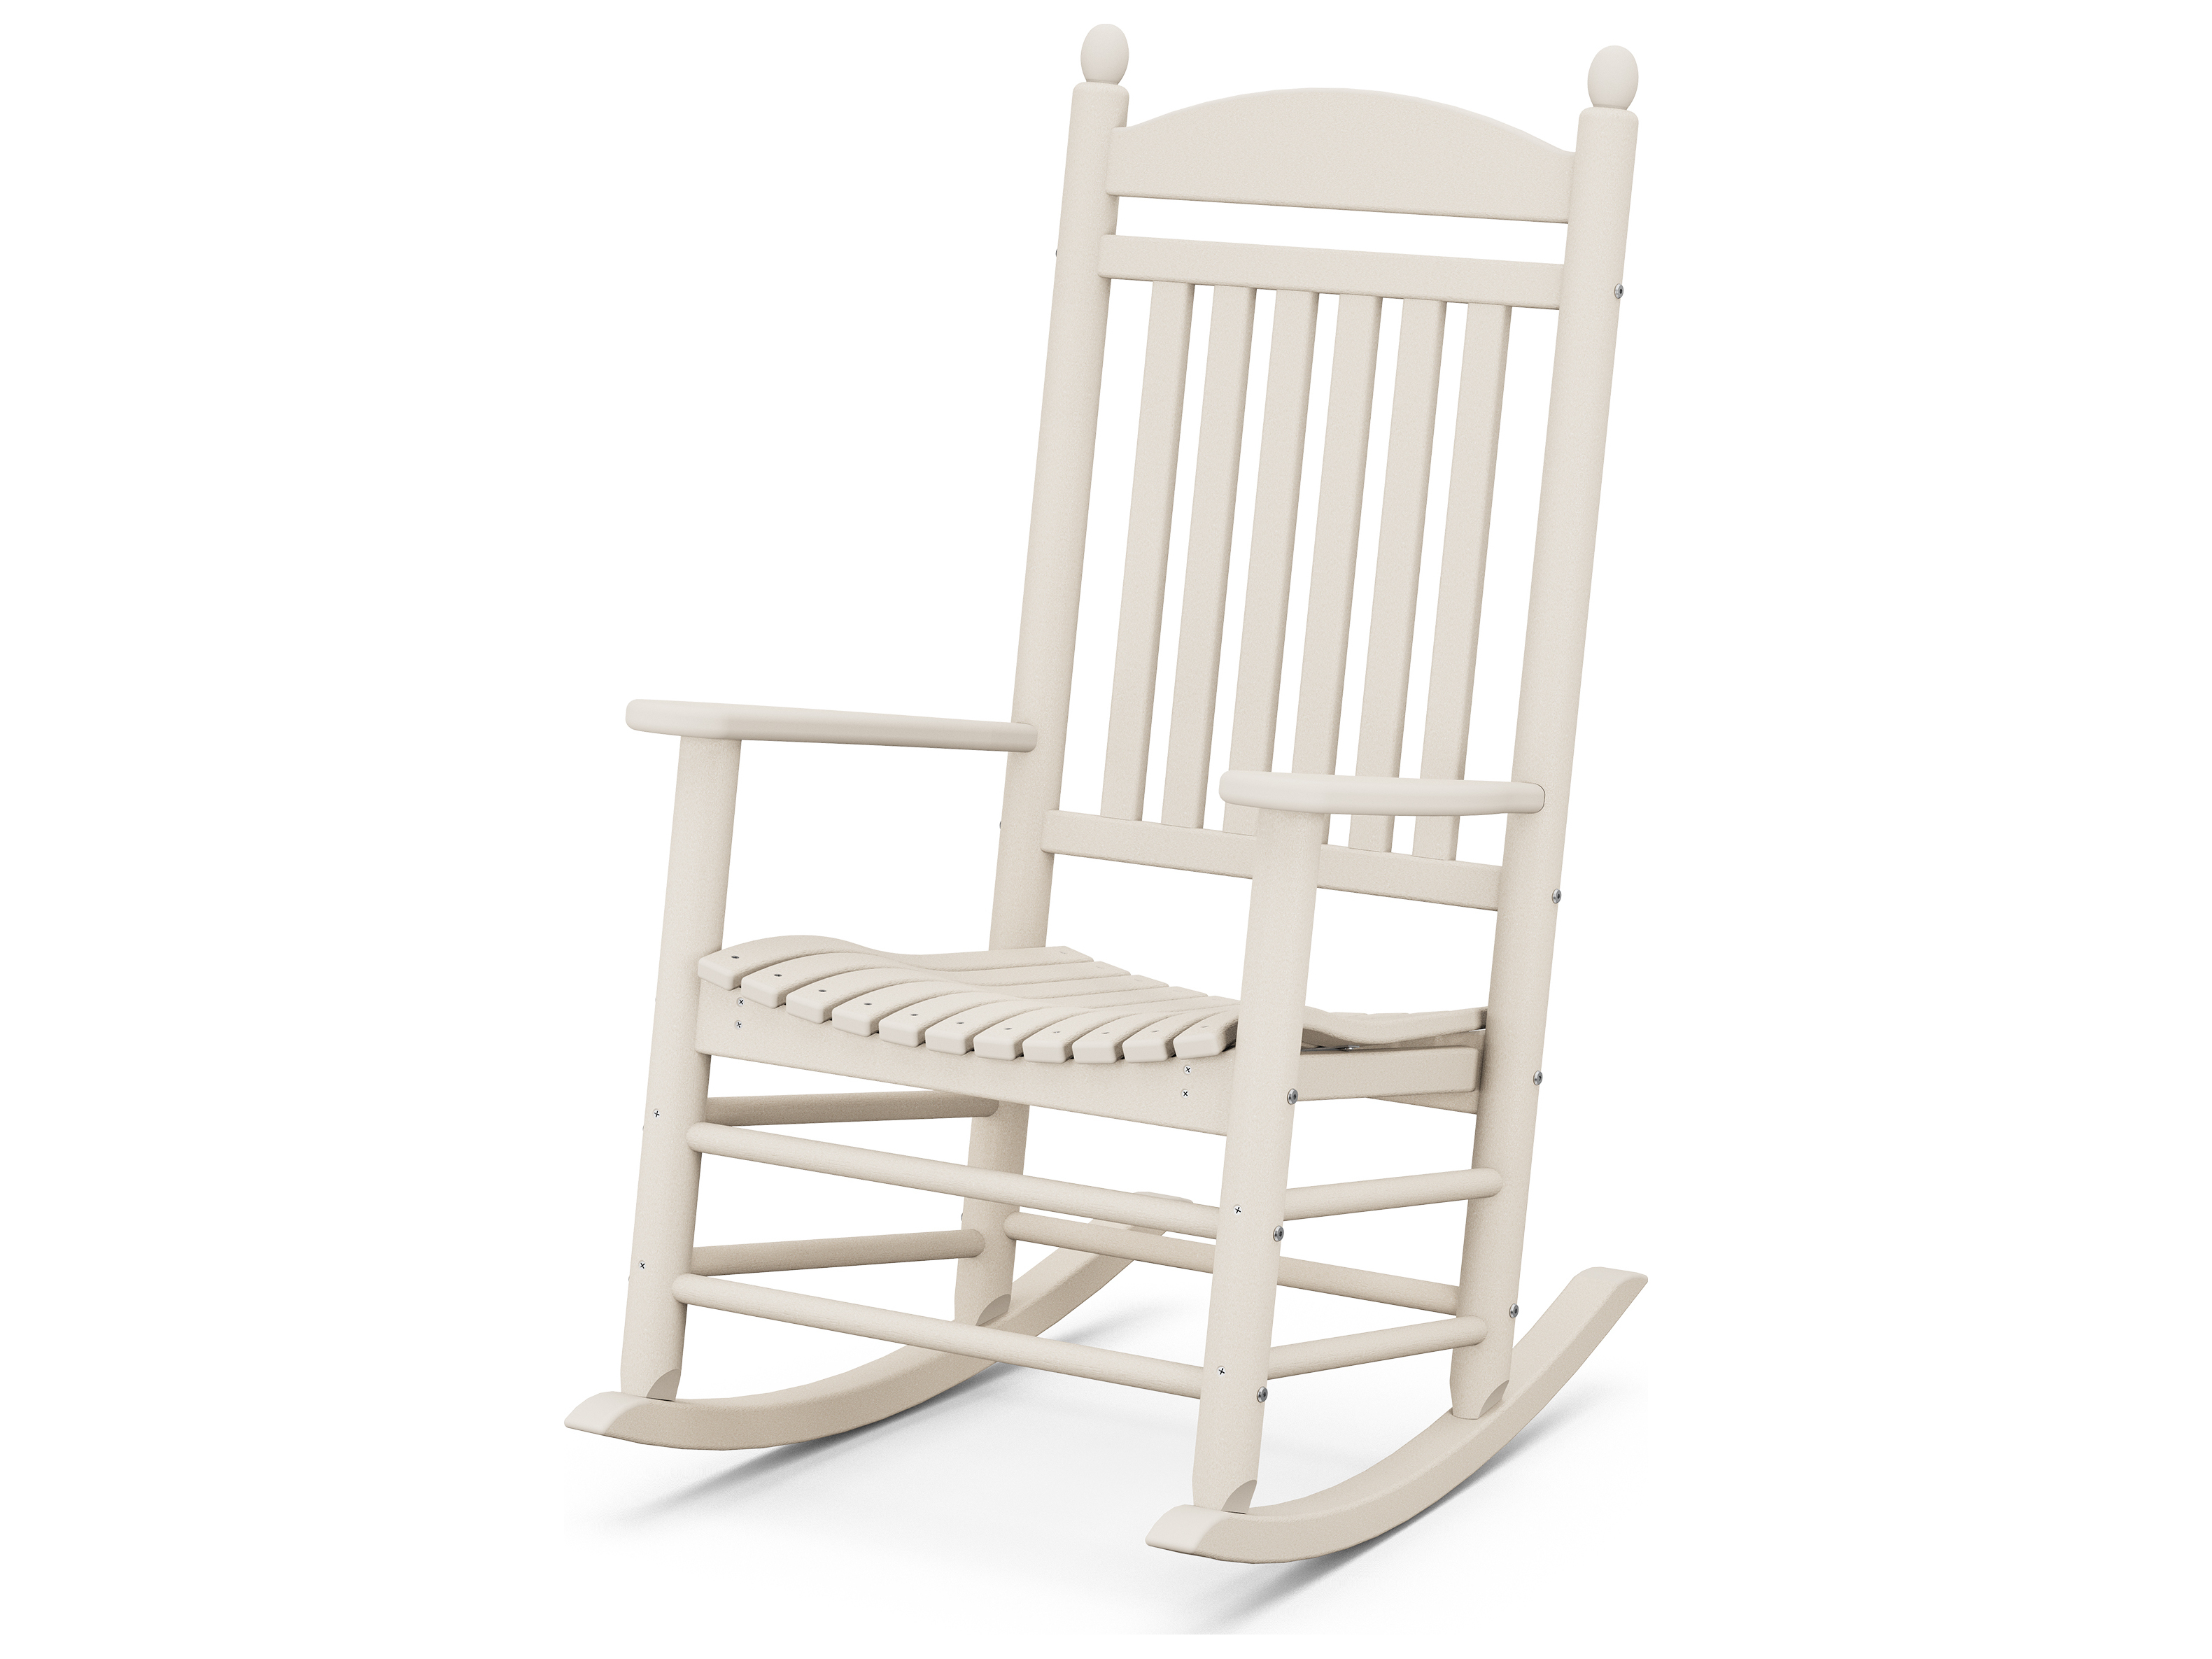 Polywood Rocker Recycled Plastic Arm Lounge Chair J147